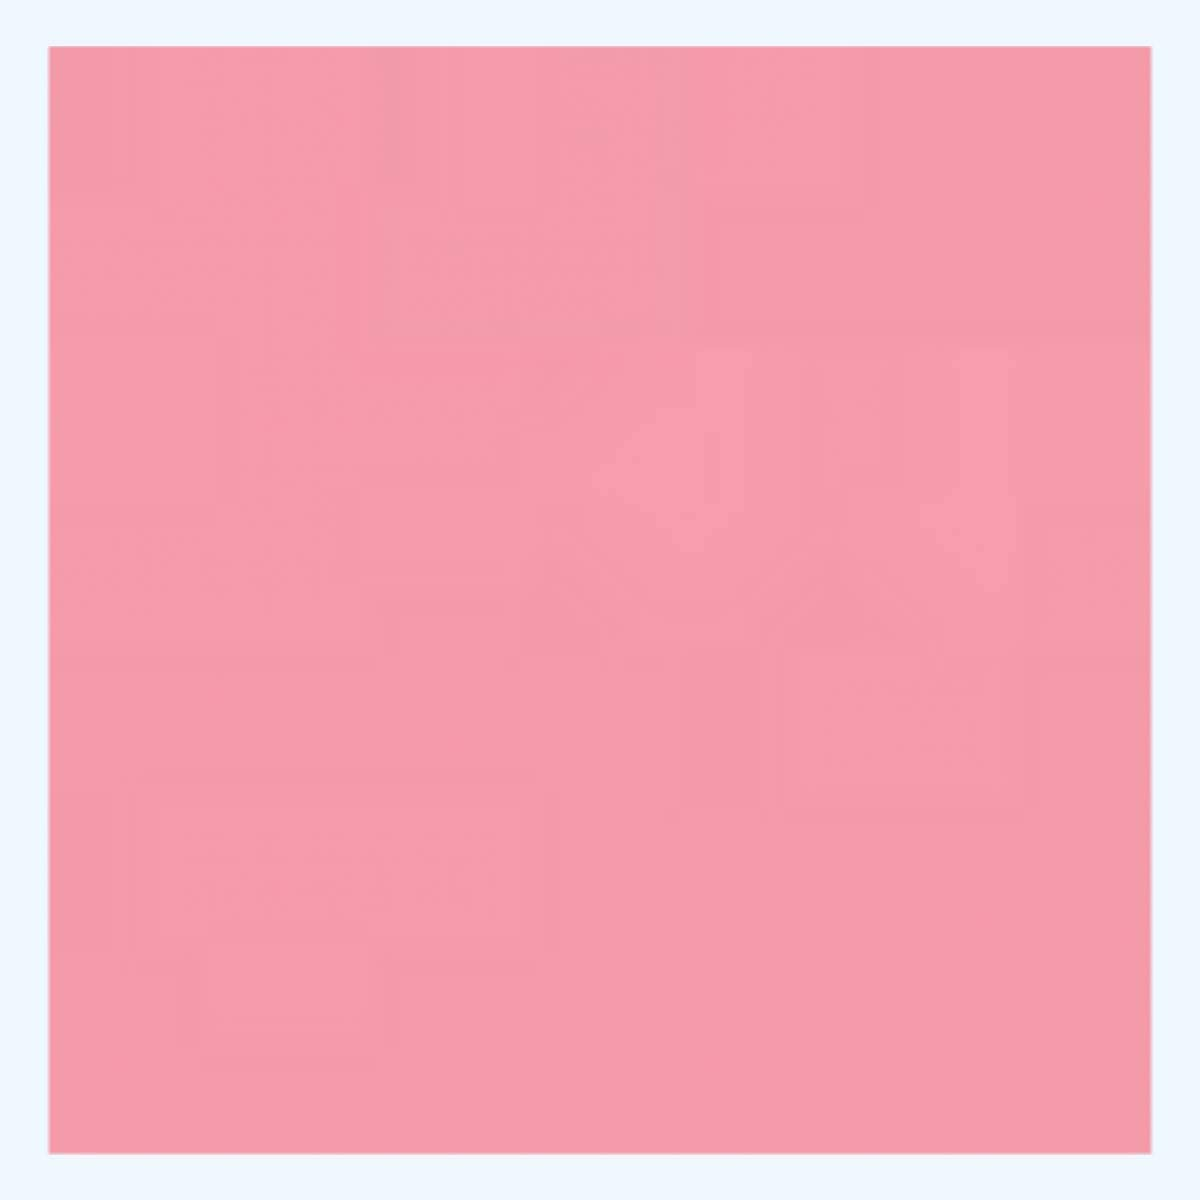 Thermal Pad,200 x 200 x 0.5mm Thermal Conductivity 5.0W/m.k,High Performance Thermal Conductive Silicone Pads for Laptop Heatsink SSD CPU GPU LED IC Chipset Cooling-Pink